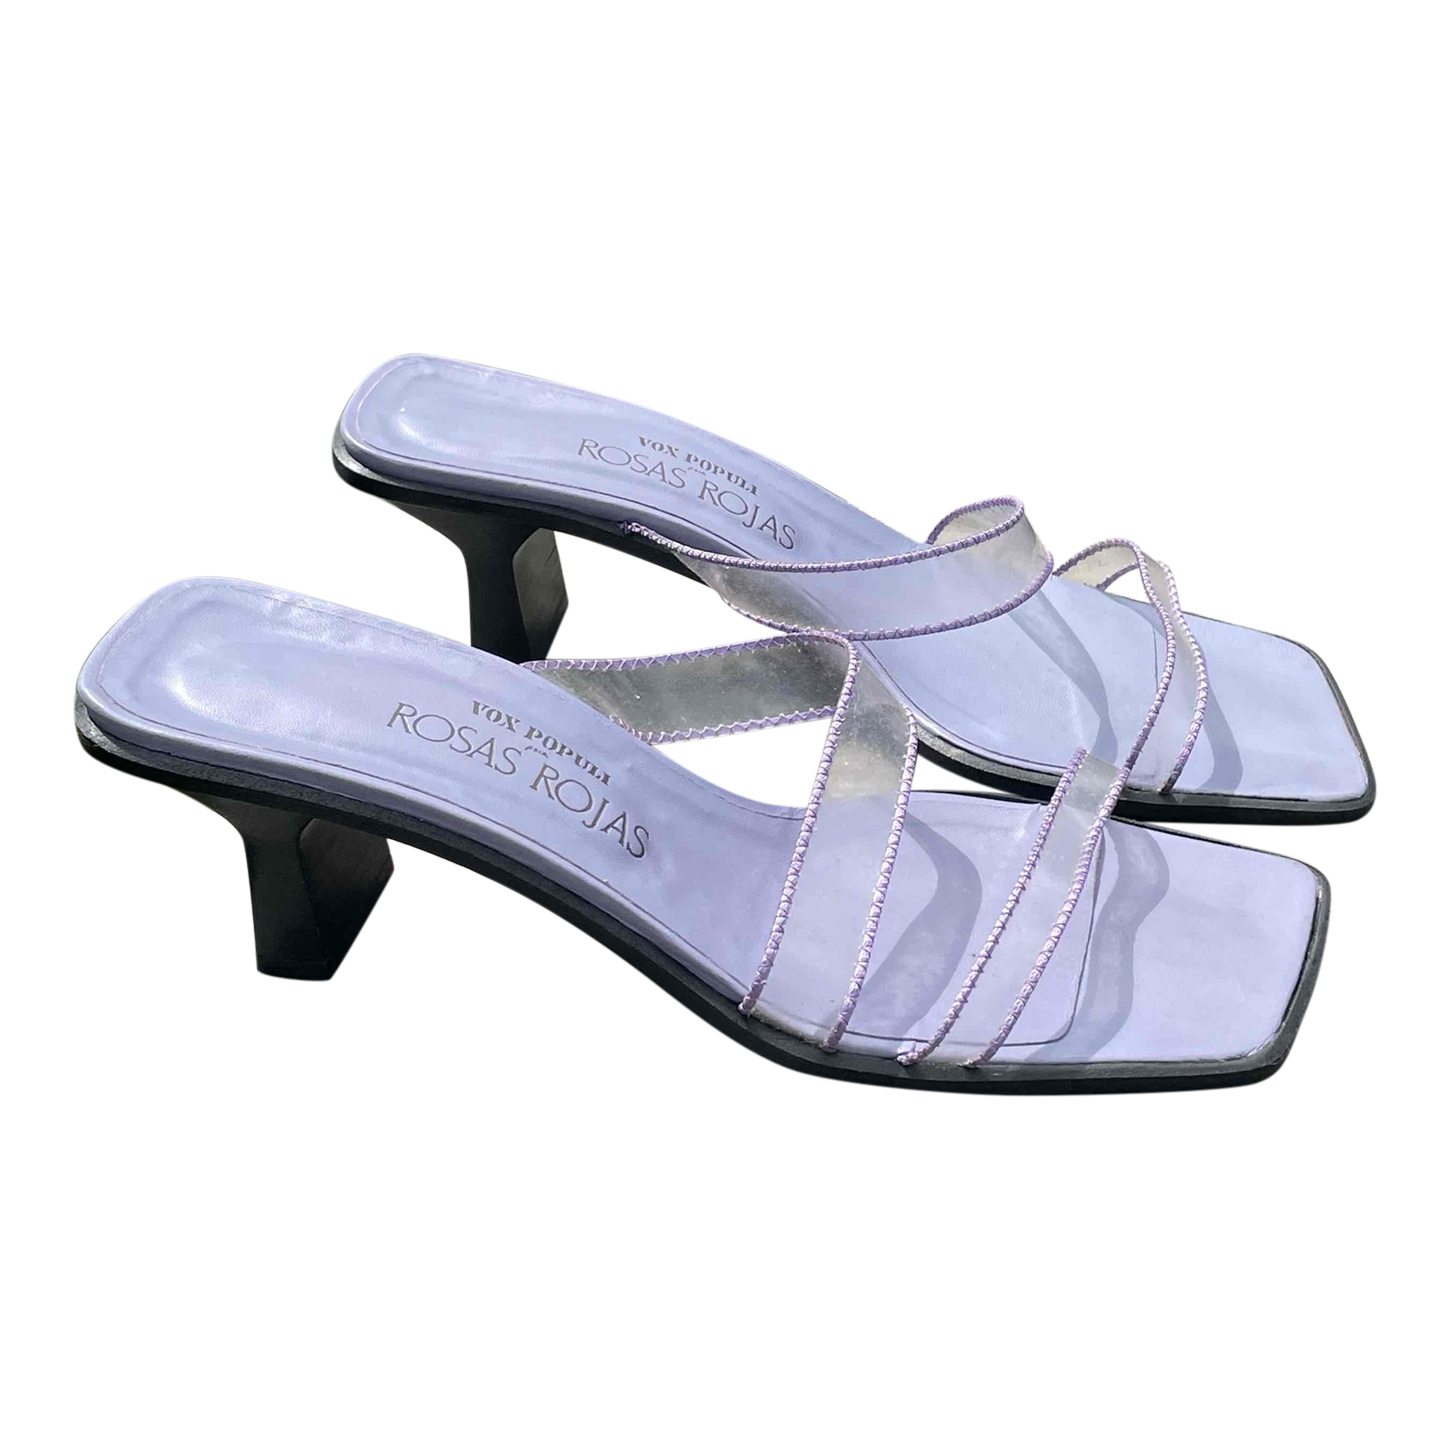 Mules lilas 90's